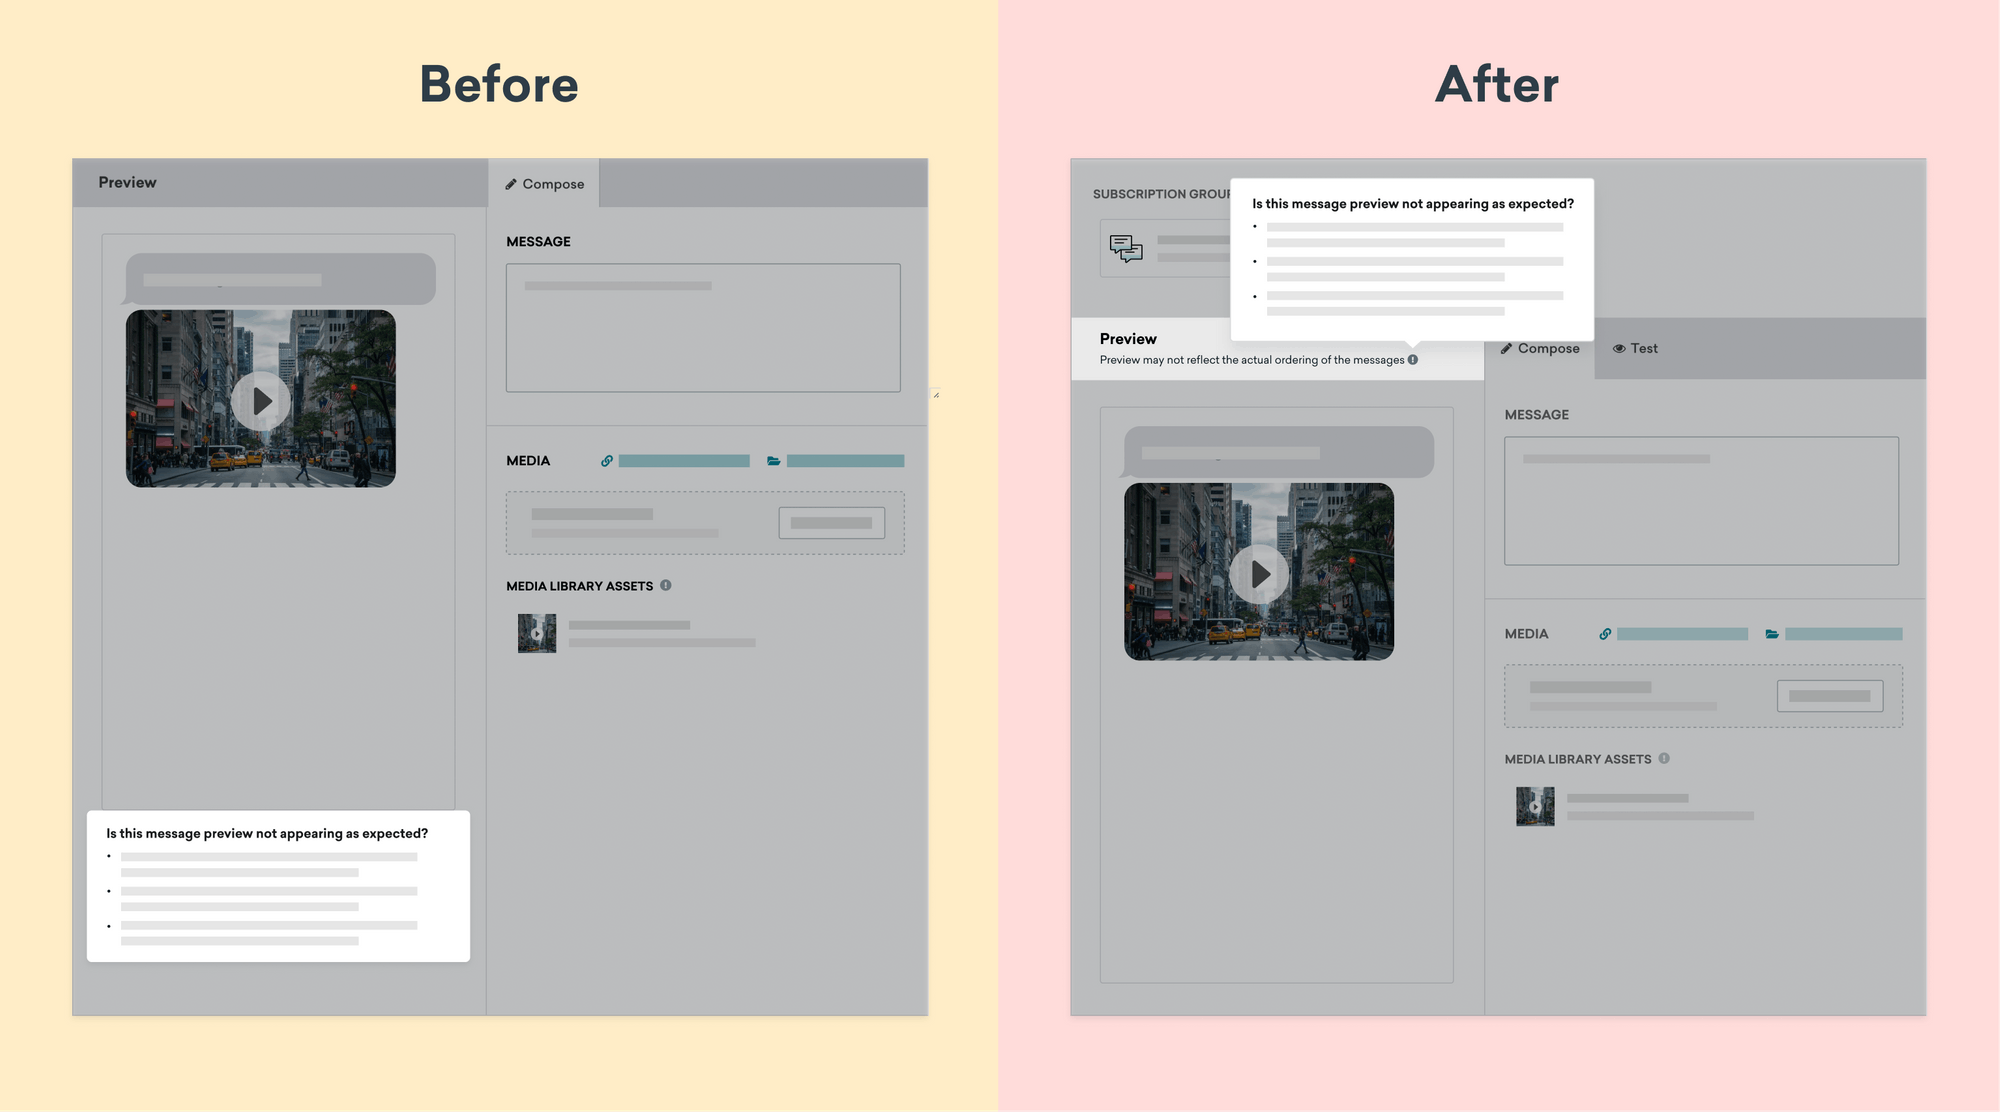 braze before and after